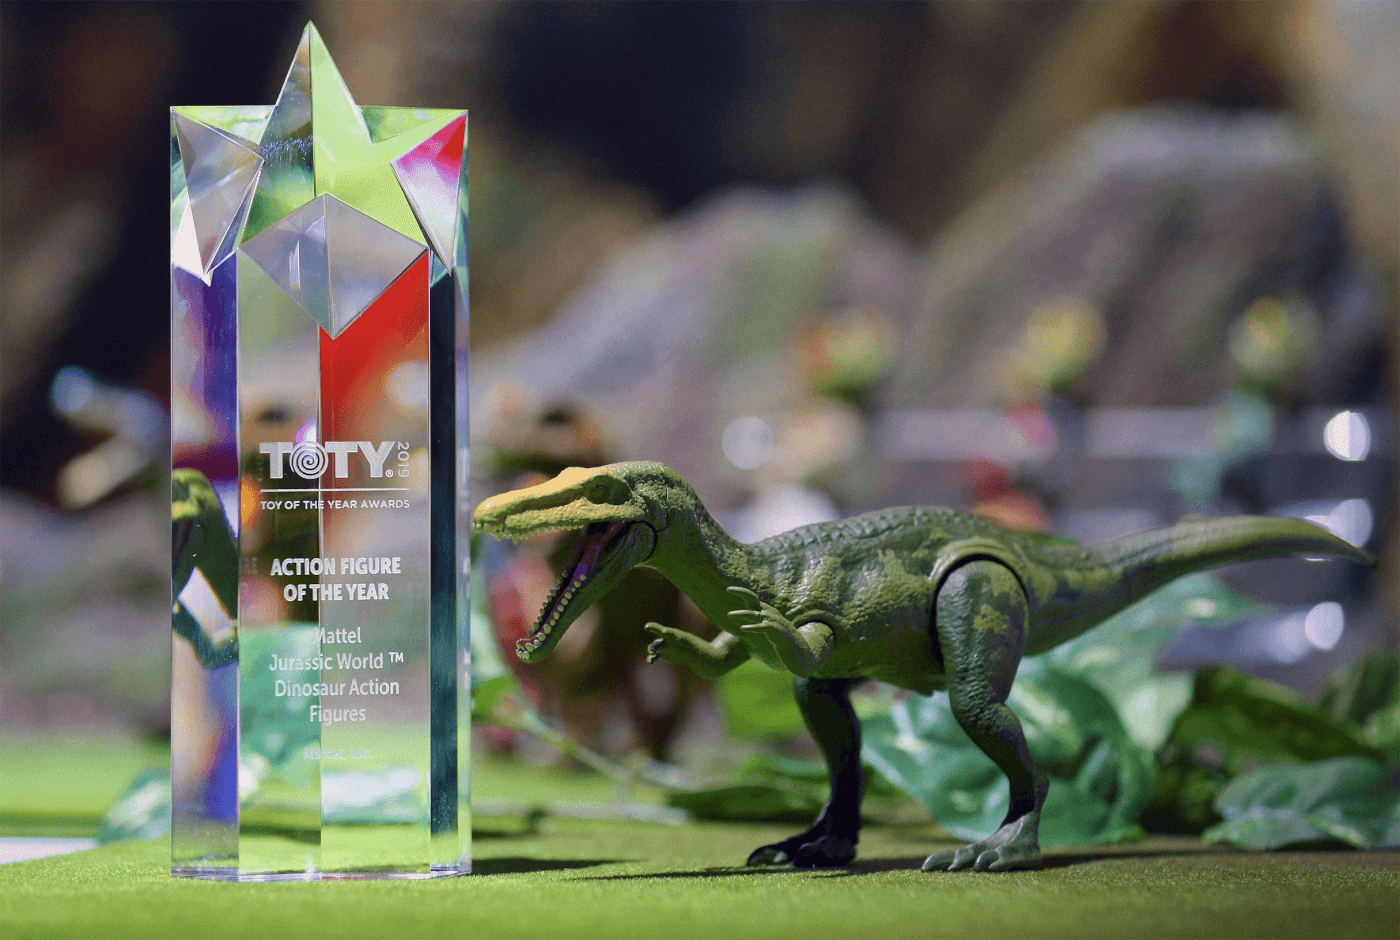 Mattel 'Jurassic World' Figures Named 'Action Figure of the Year'